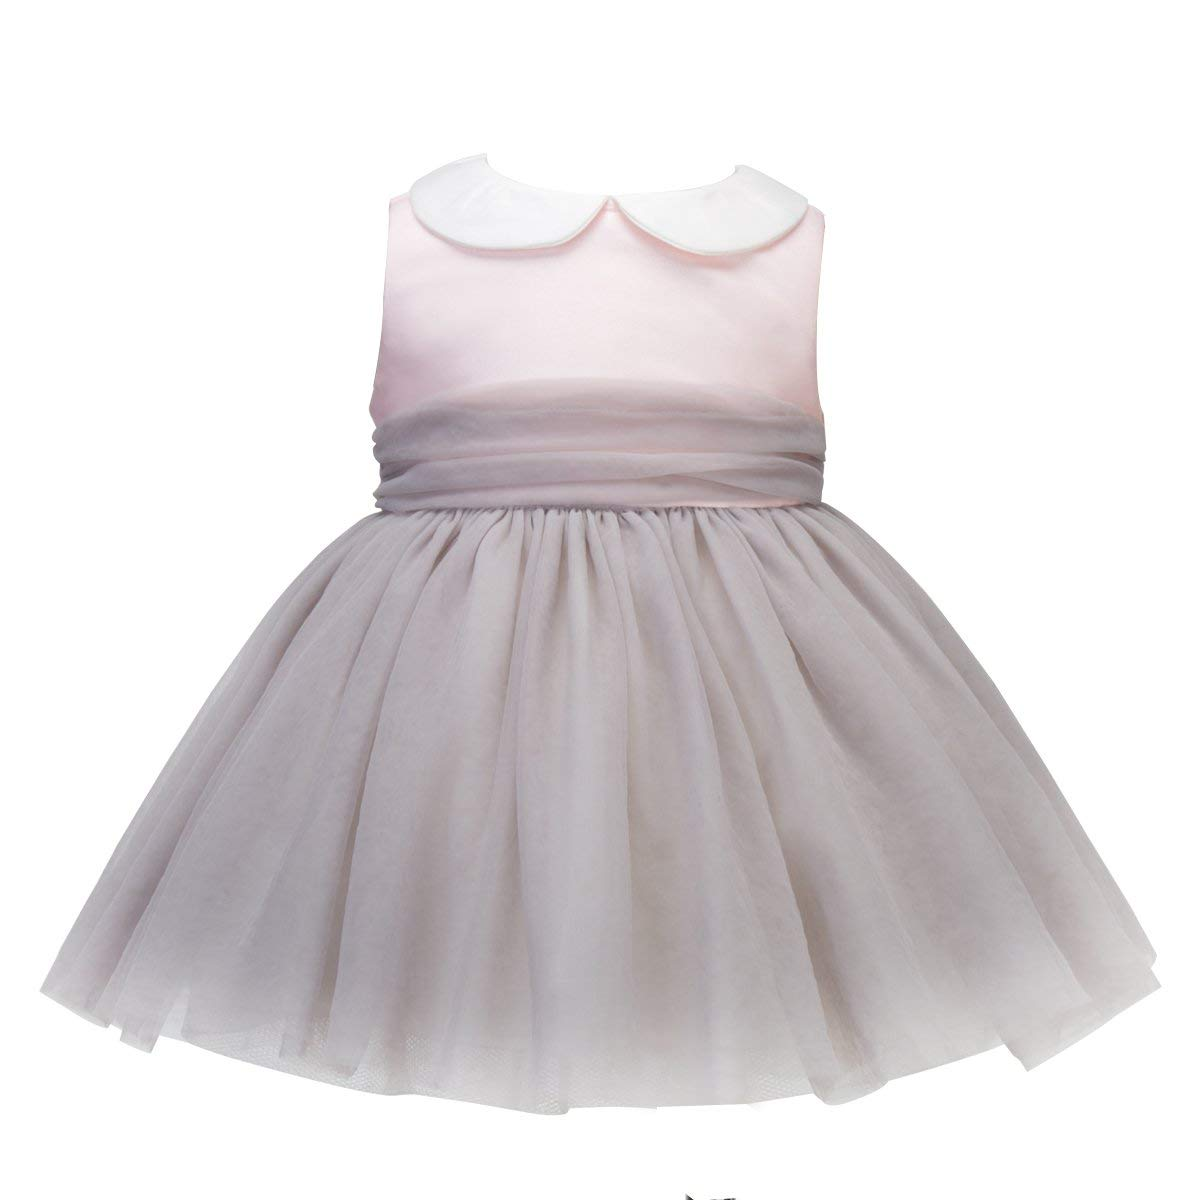 df4fec1c849b Get Quotations · Lace Flower Girl Dress Peach Baby Dress Tulle Baby Dresses  Baby Floral Dresses 3 6 Months